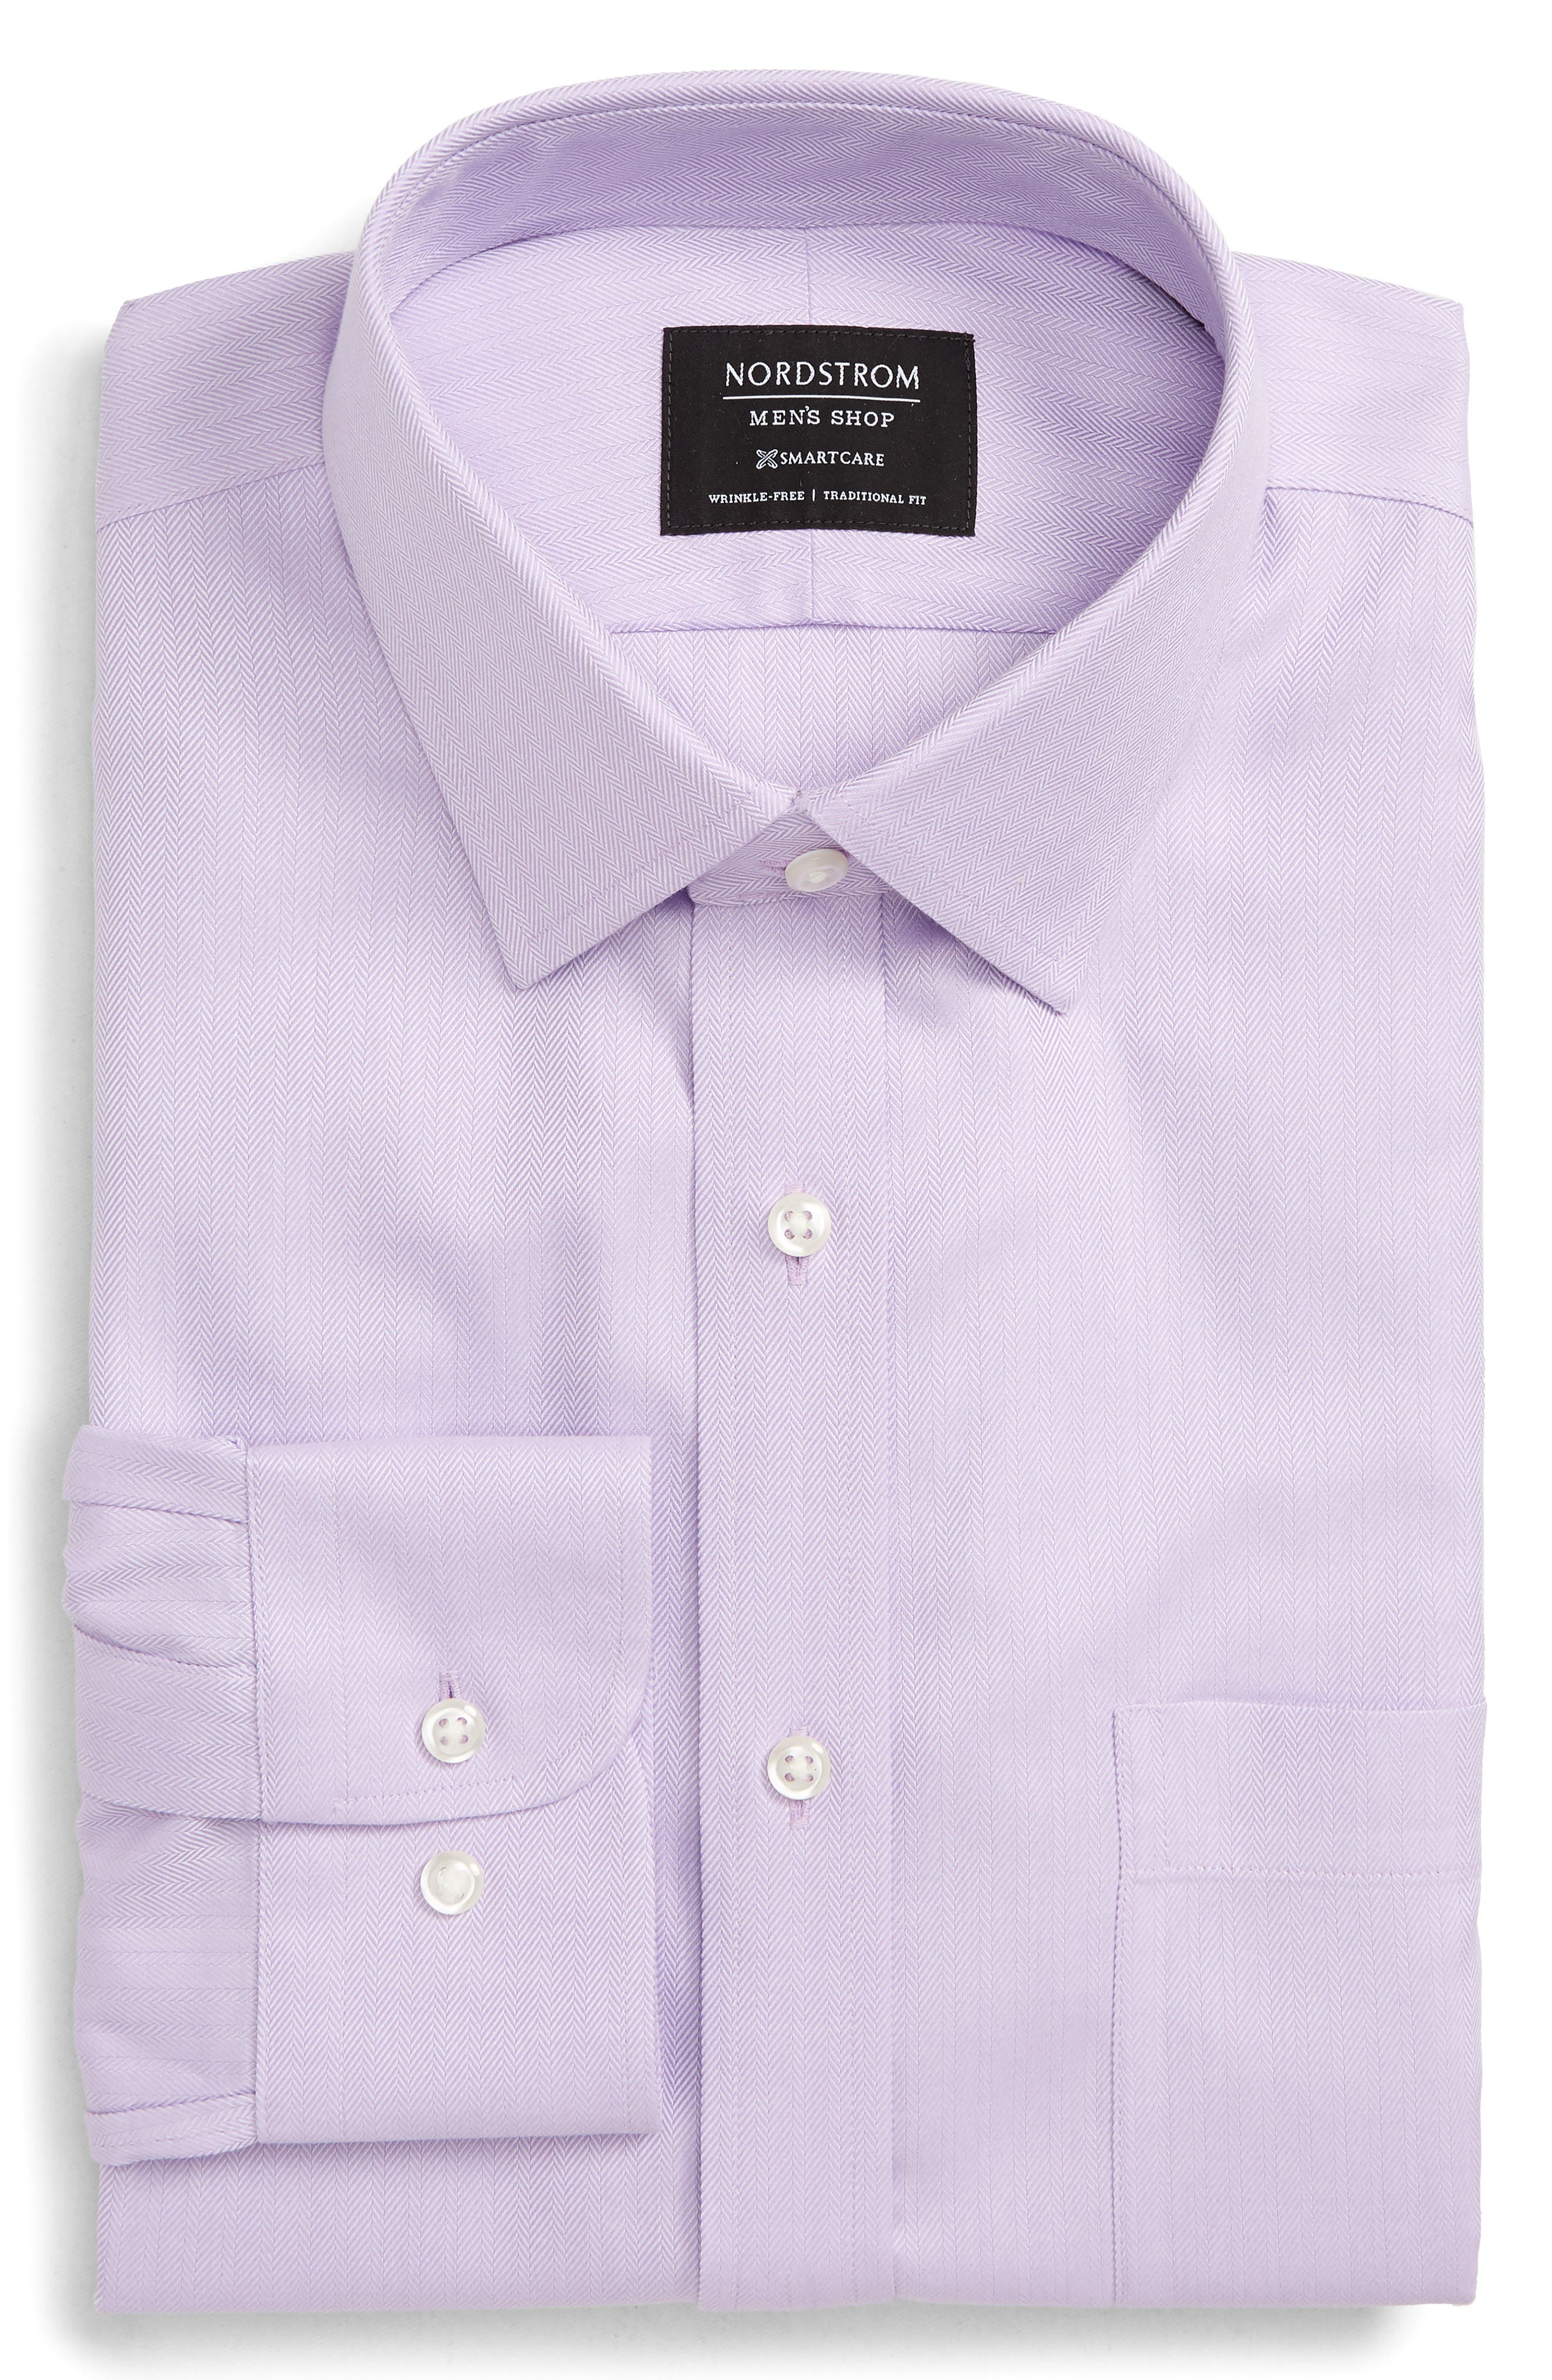 Nordstrom Shop Smartcare(TM) Traditional Fit Herringbone Dress Shirt - Purple